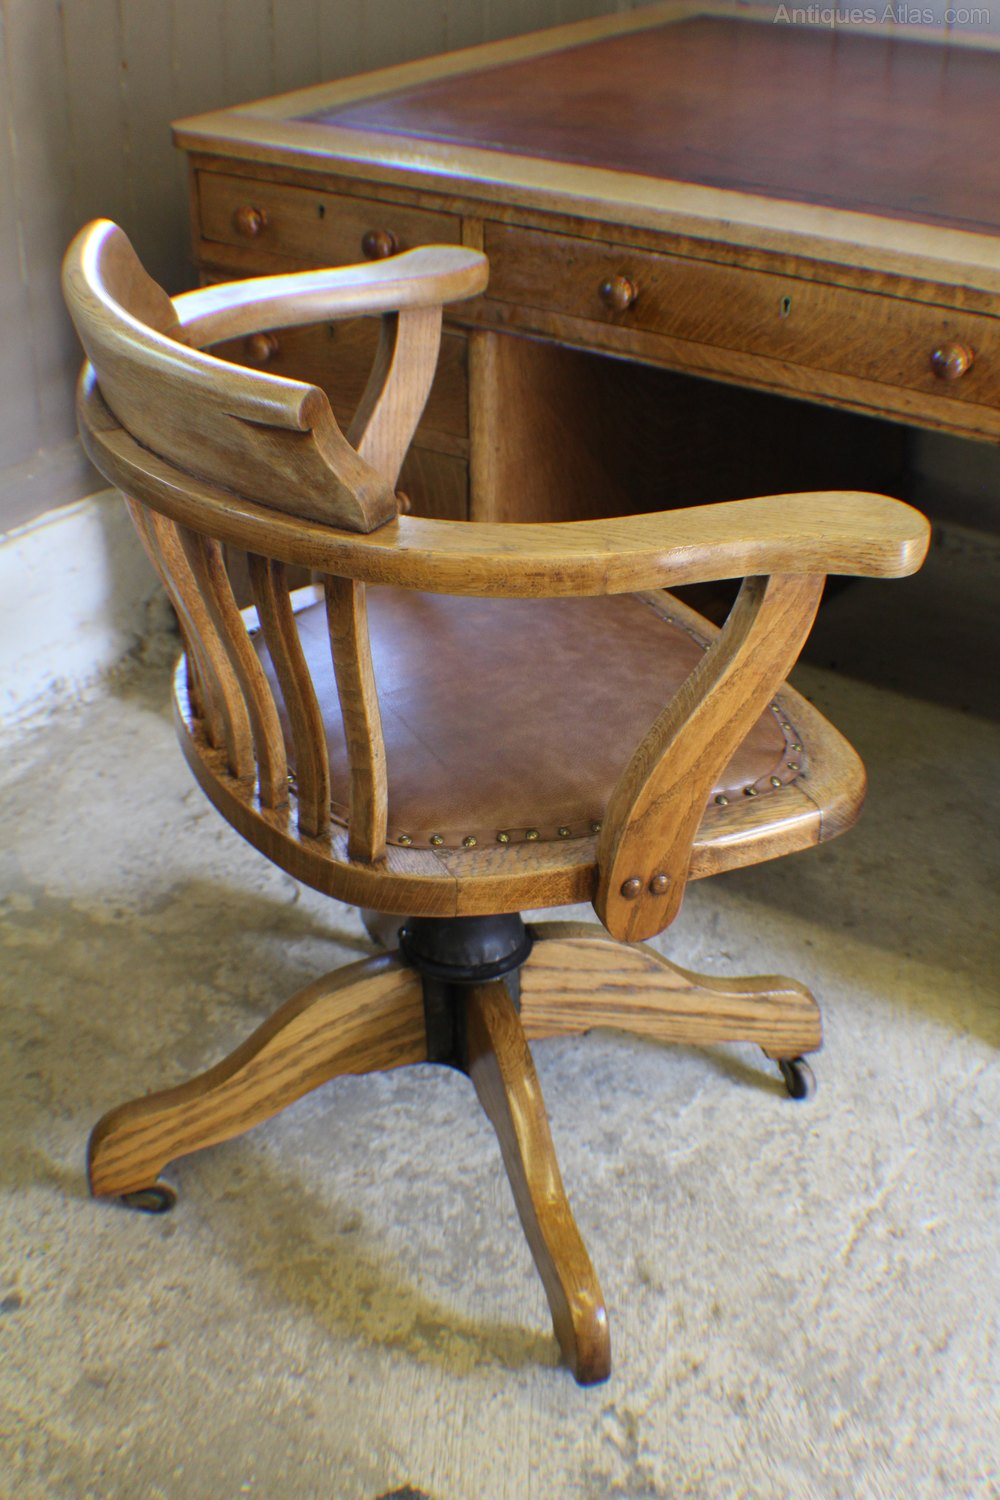 vintage oak 1930s adjustable desk office chair antiques atlas - Vintage Oak Office Swivel Chair. Antique Bankers Oak Rolling Desk